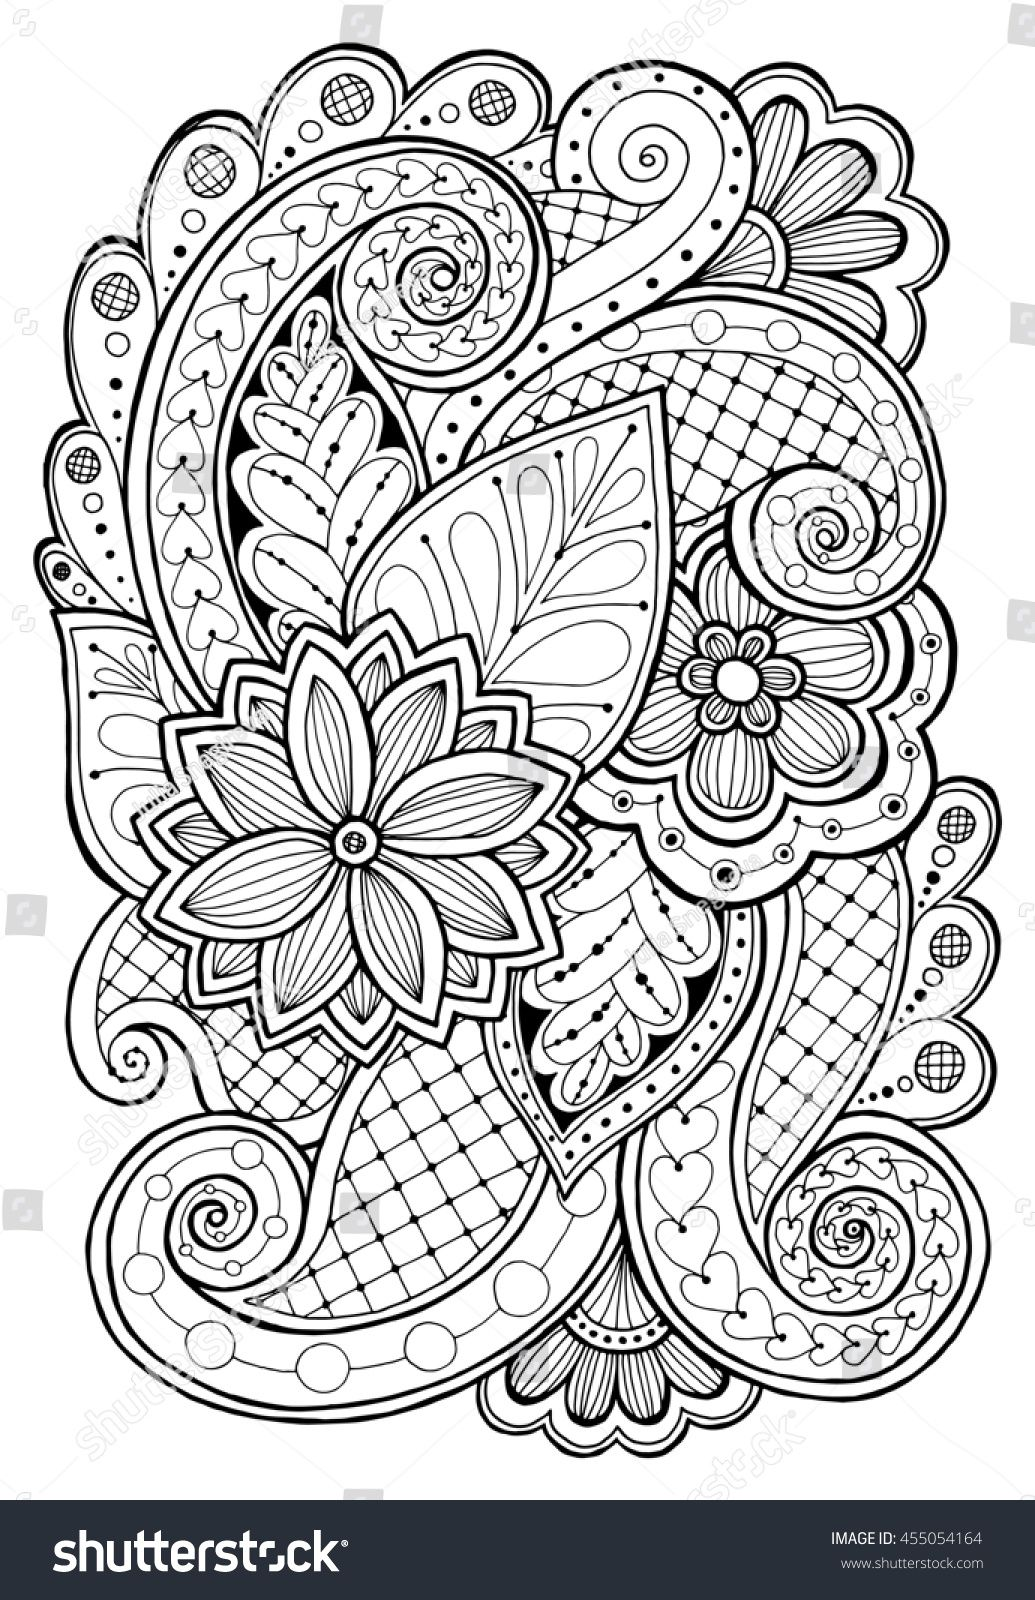 Hand Drawn Patterns With Flowers Ornate Patterns With Abstract Flowers And Leaves Doodle Floral B Pattern Coloring Pages Flower Coloring Pages Coloring Pages